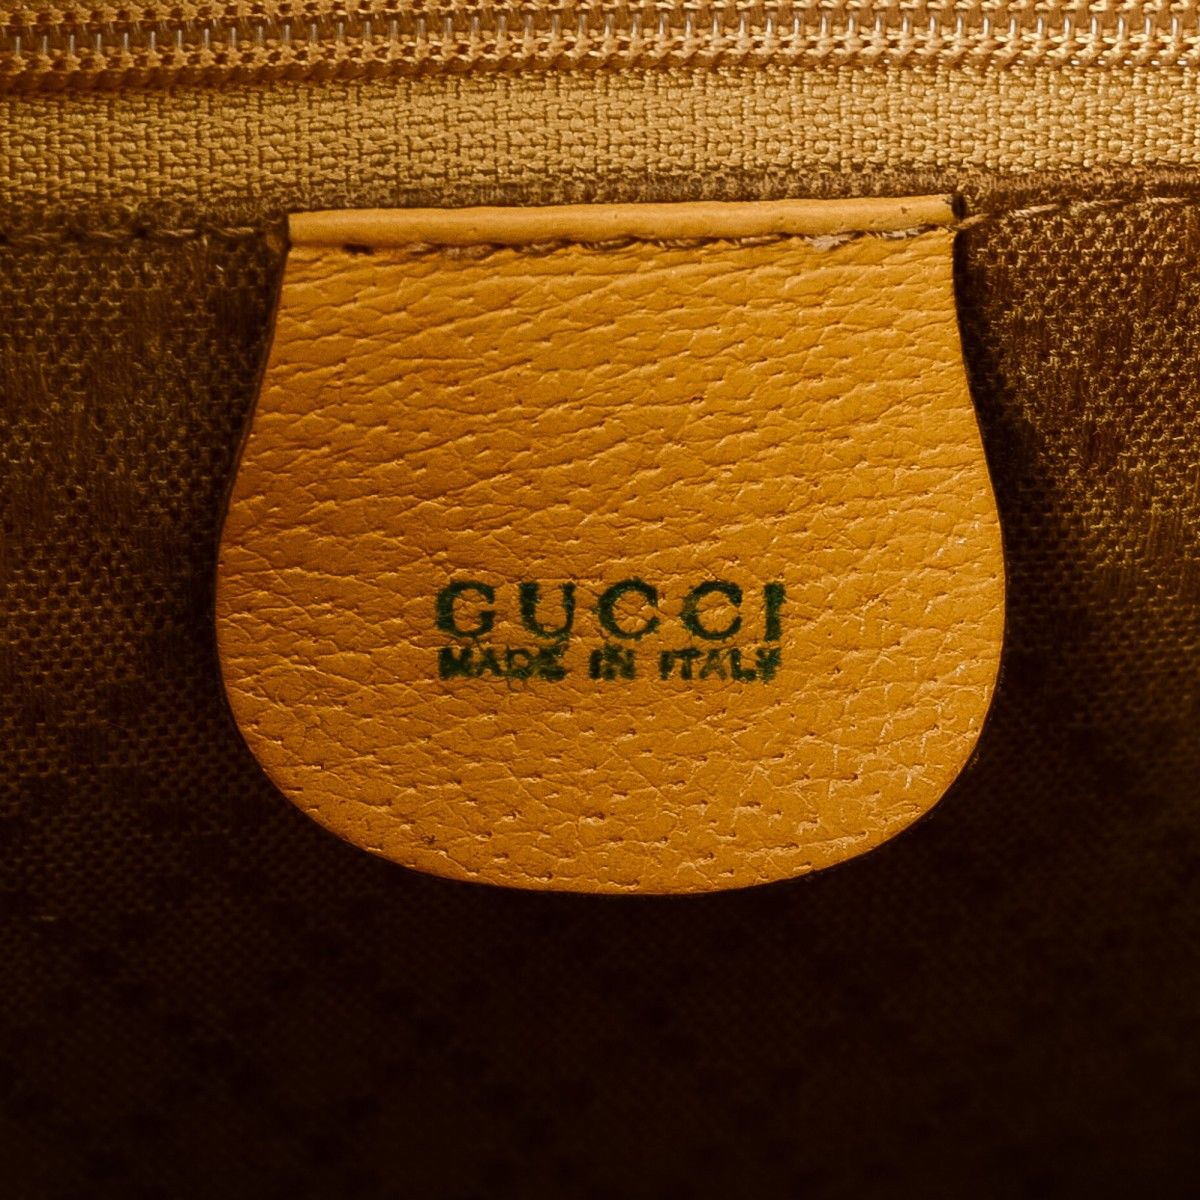 85f9fb9f5816 Gucci Bamboo Backpack. Free Shipping. LXRandCo guarantees this is an authentic  vintage Gucci Bamboo backpack. This chic backpack comes in tan leather.